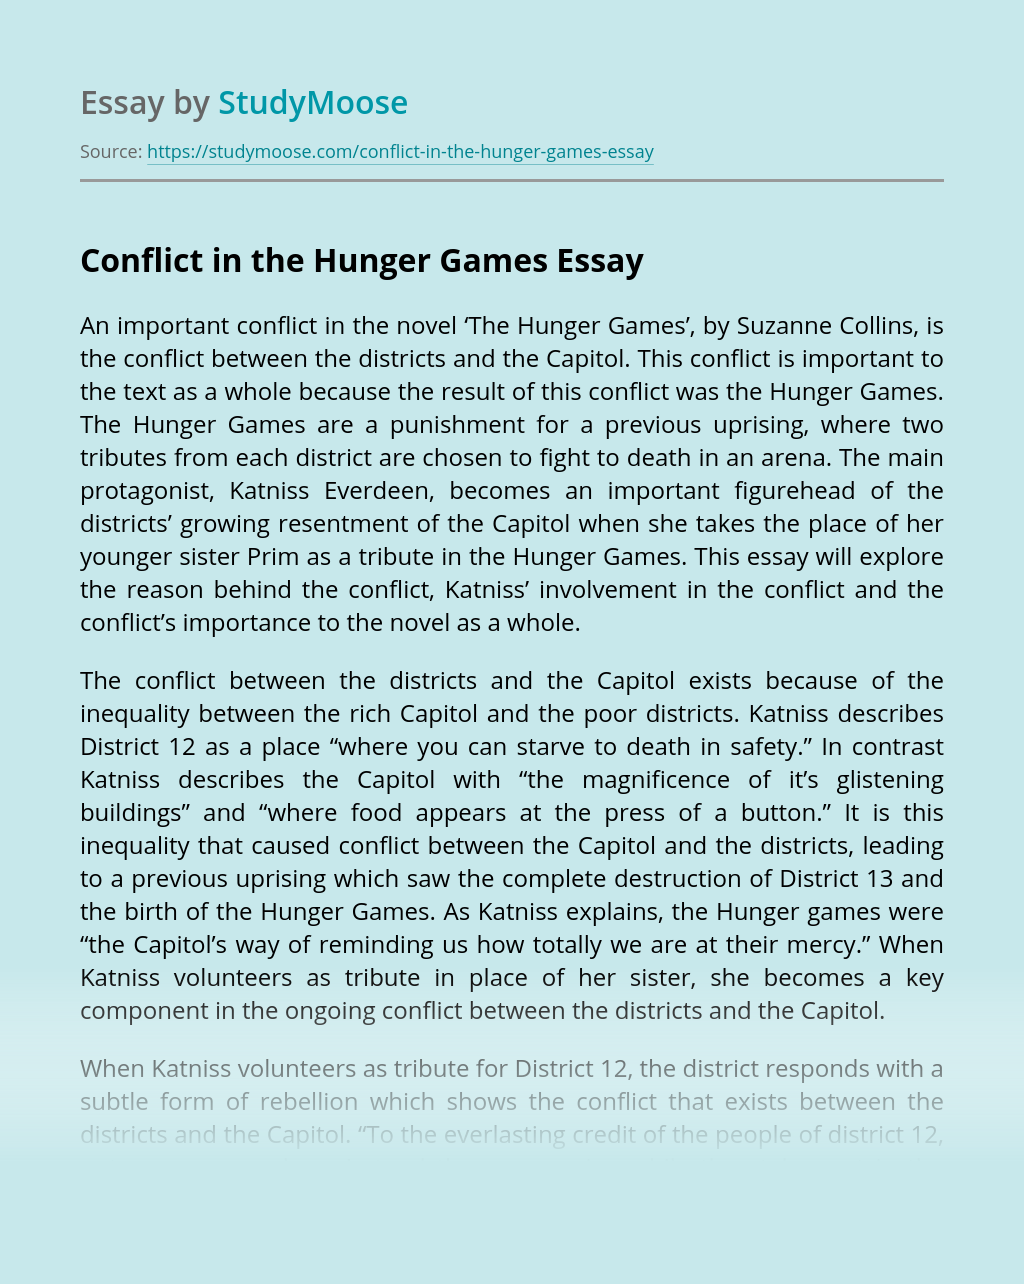 Conflict in the Hunger Games